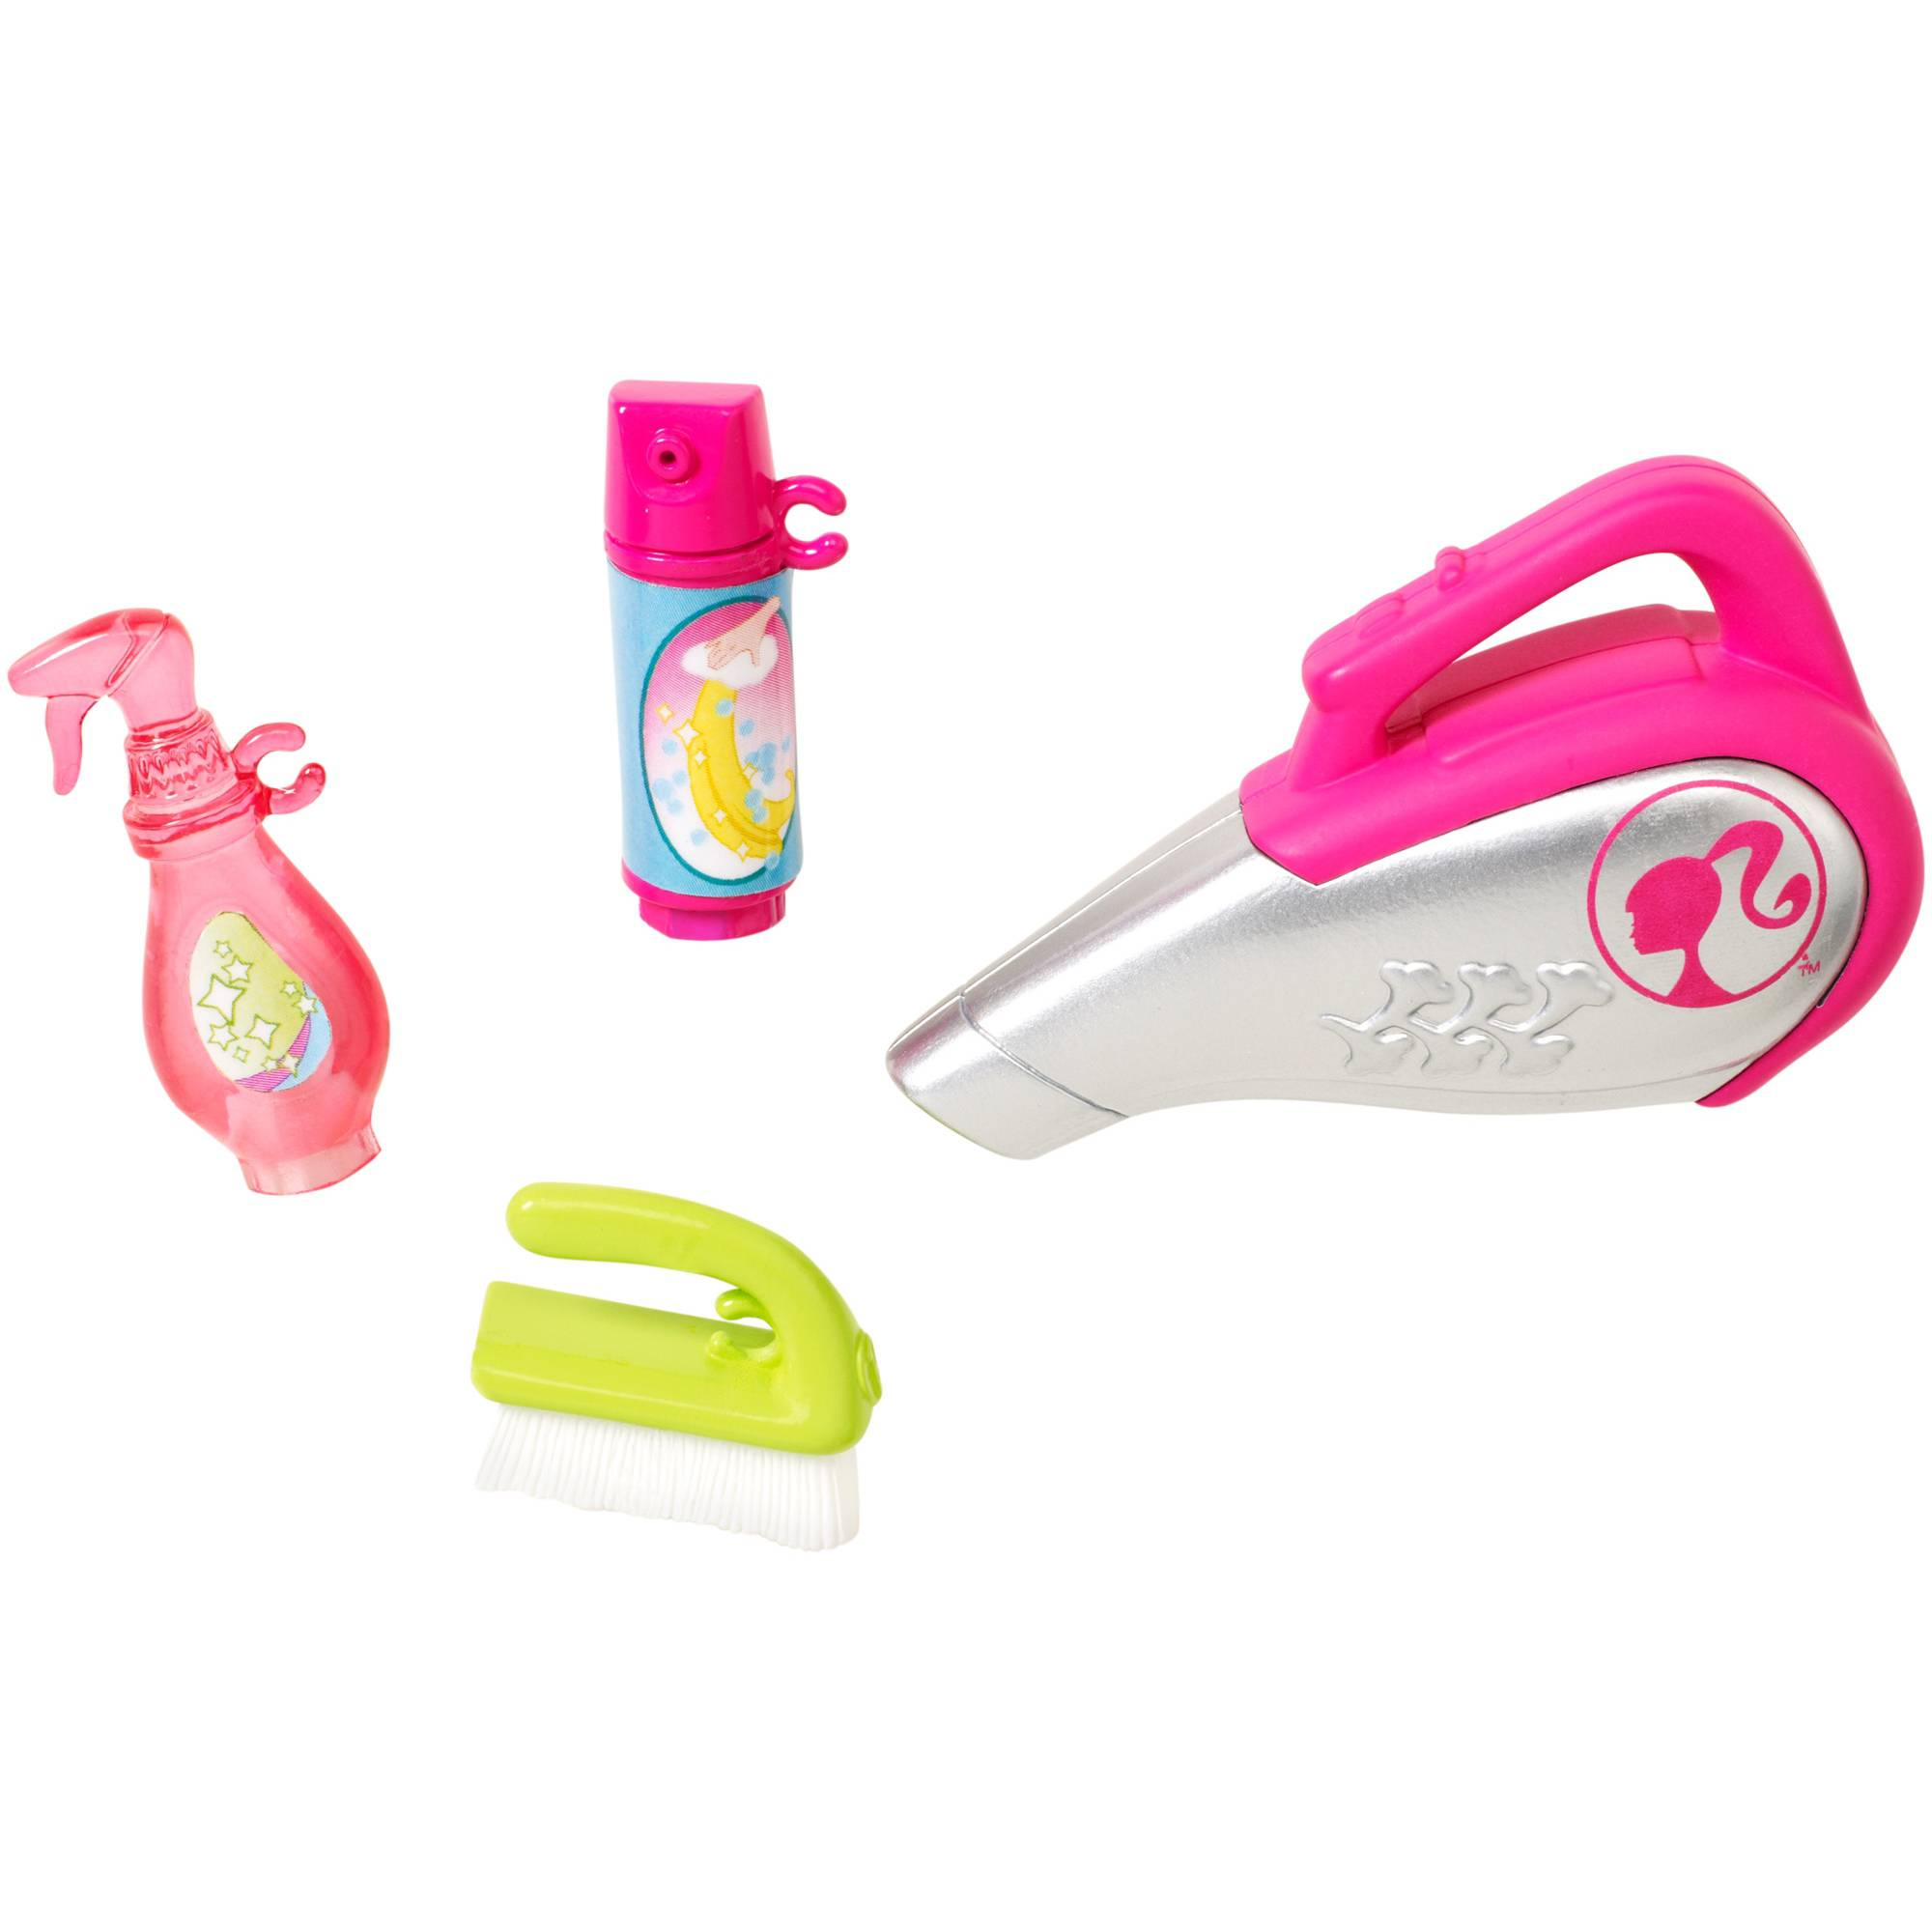 Barbie Mini Accessory Set, Cleaning Pack